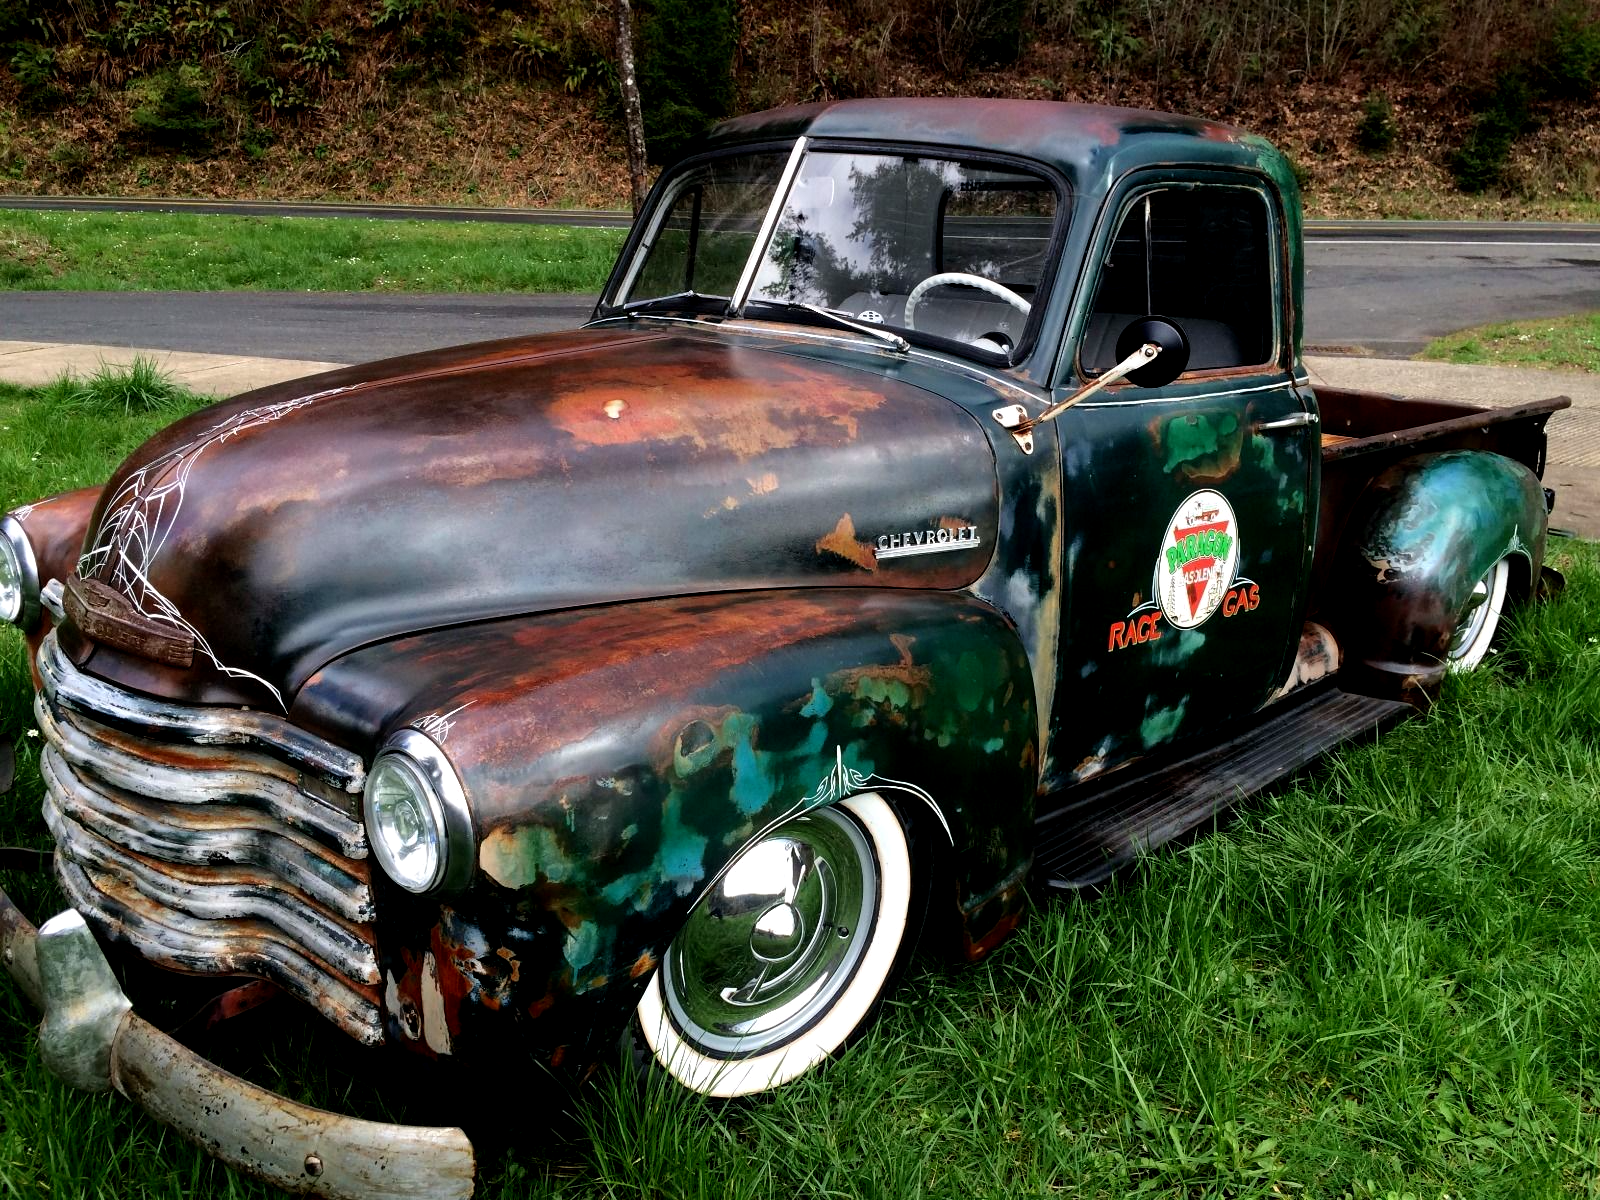 Stunning 1952 Chevrolet Pickups With Highly Detailed